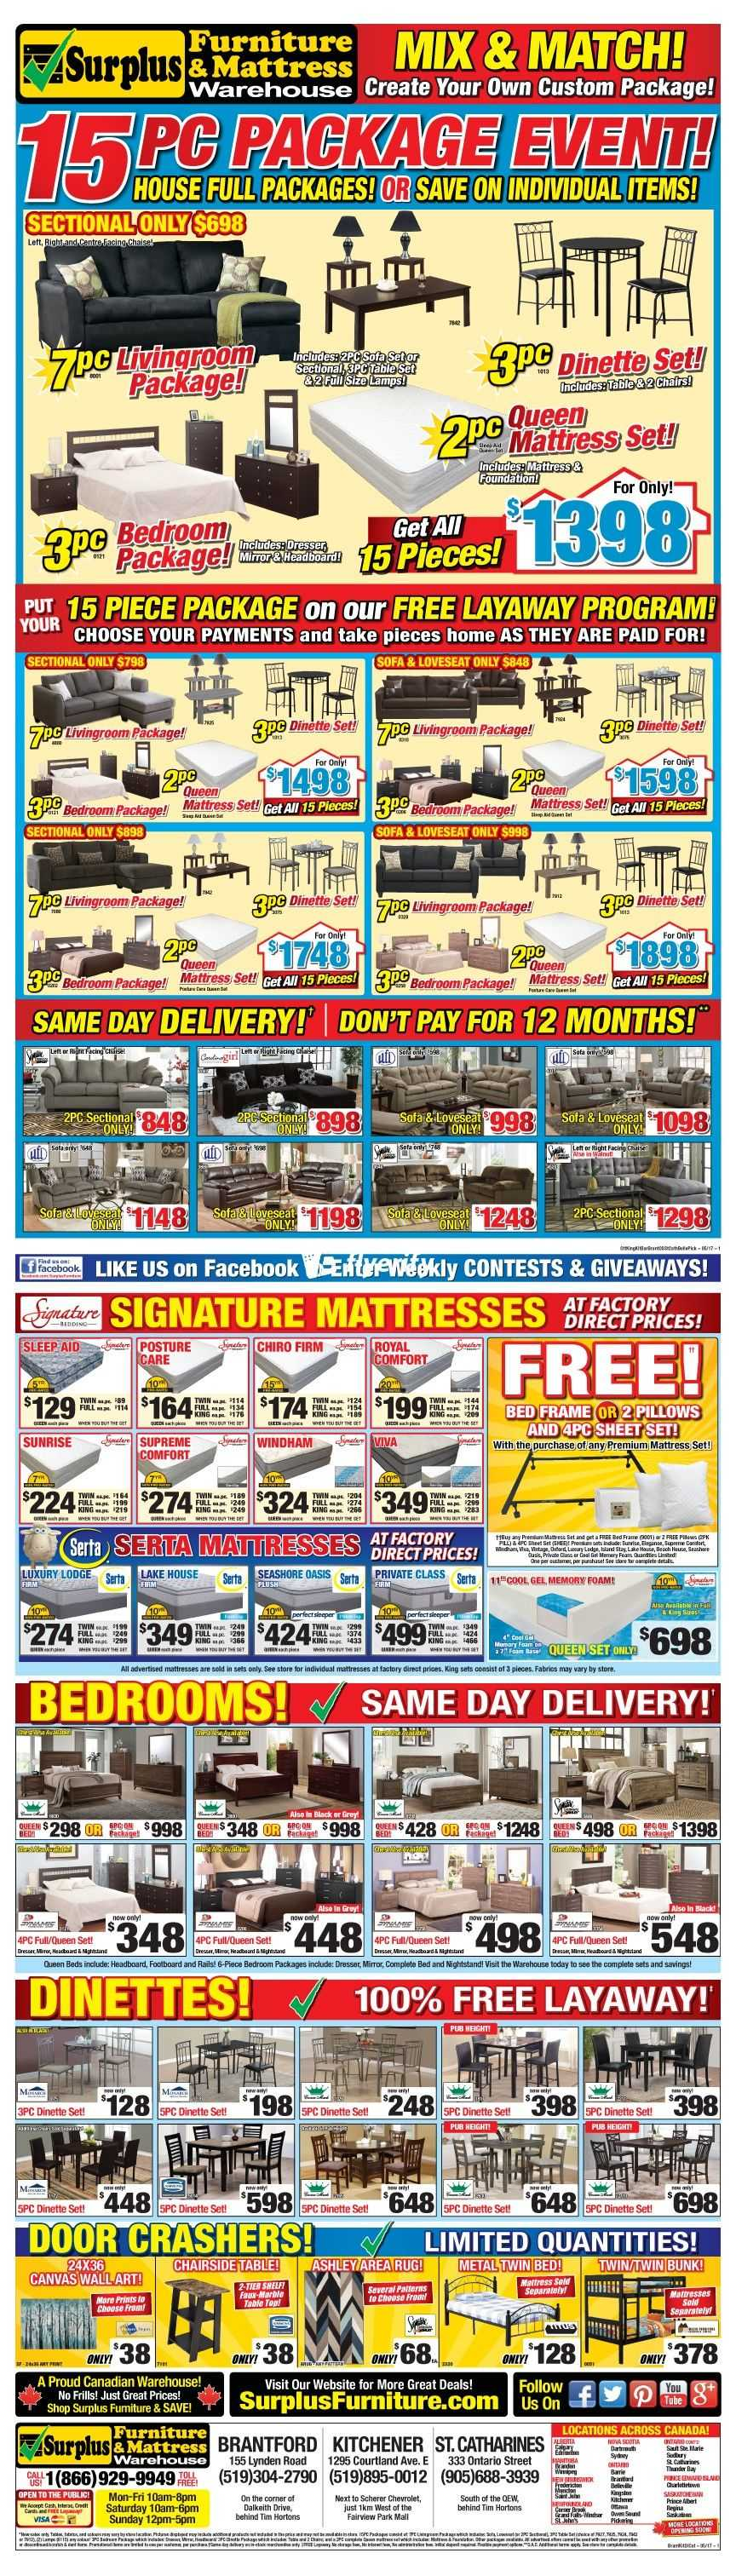 Furniture Warehouse Kitchener Surplus Furniture Mattress Warehouse Flyers